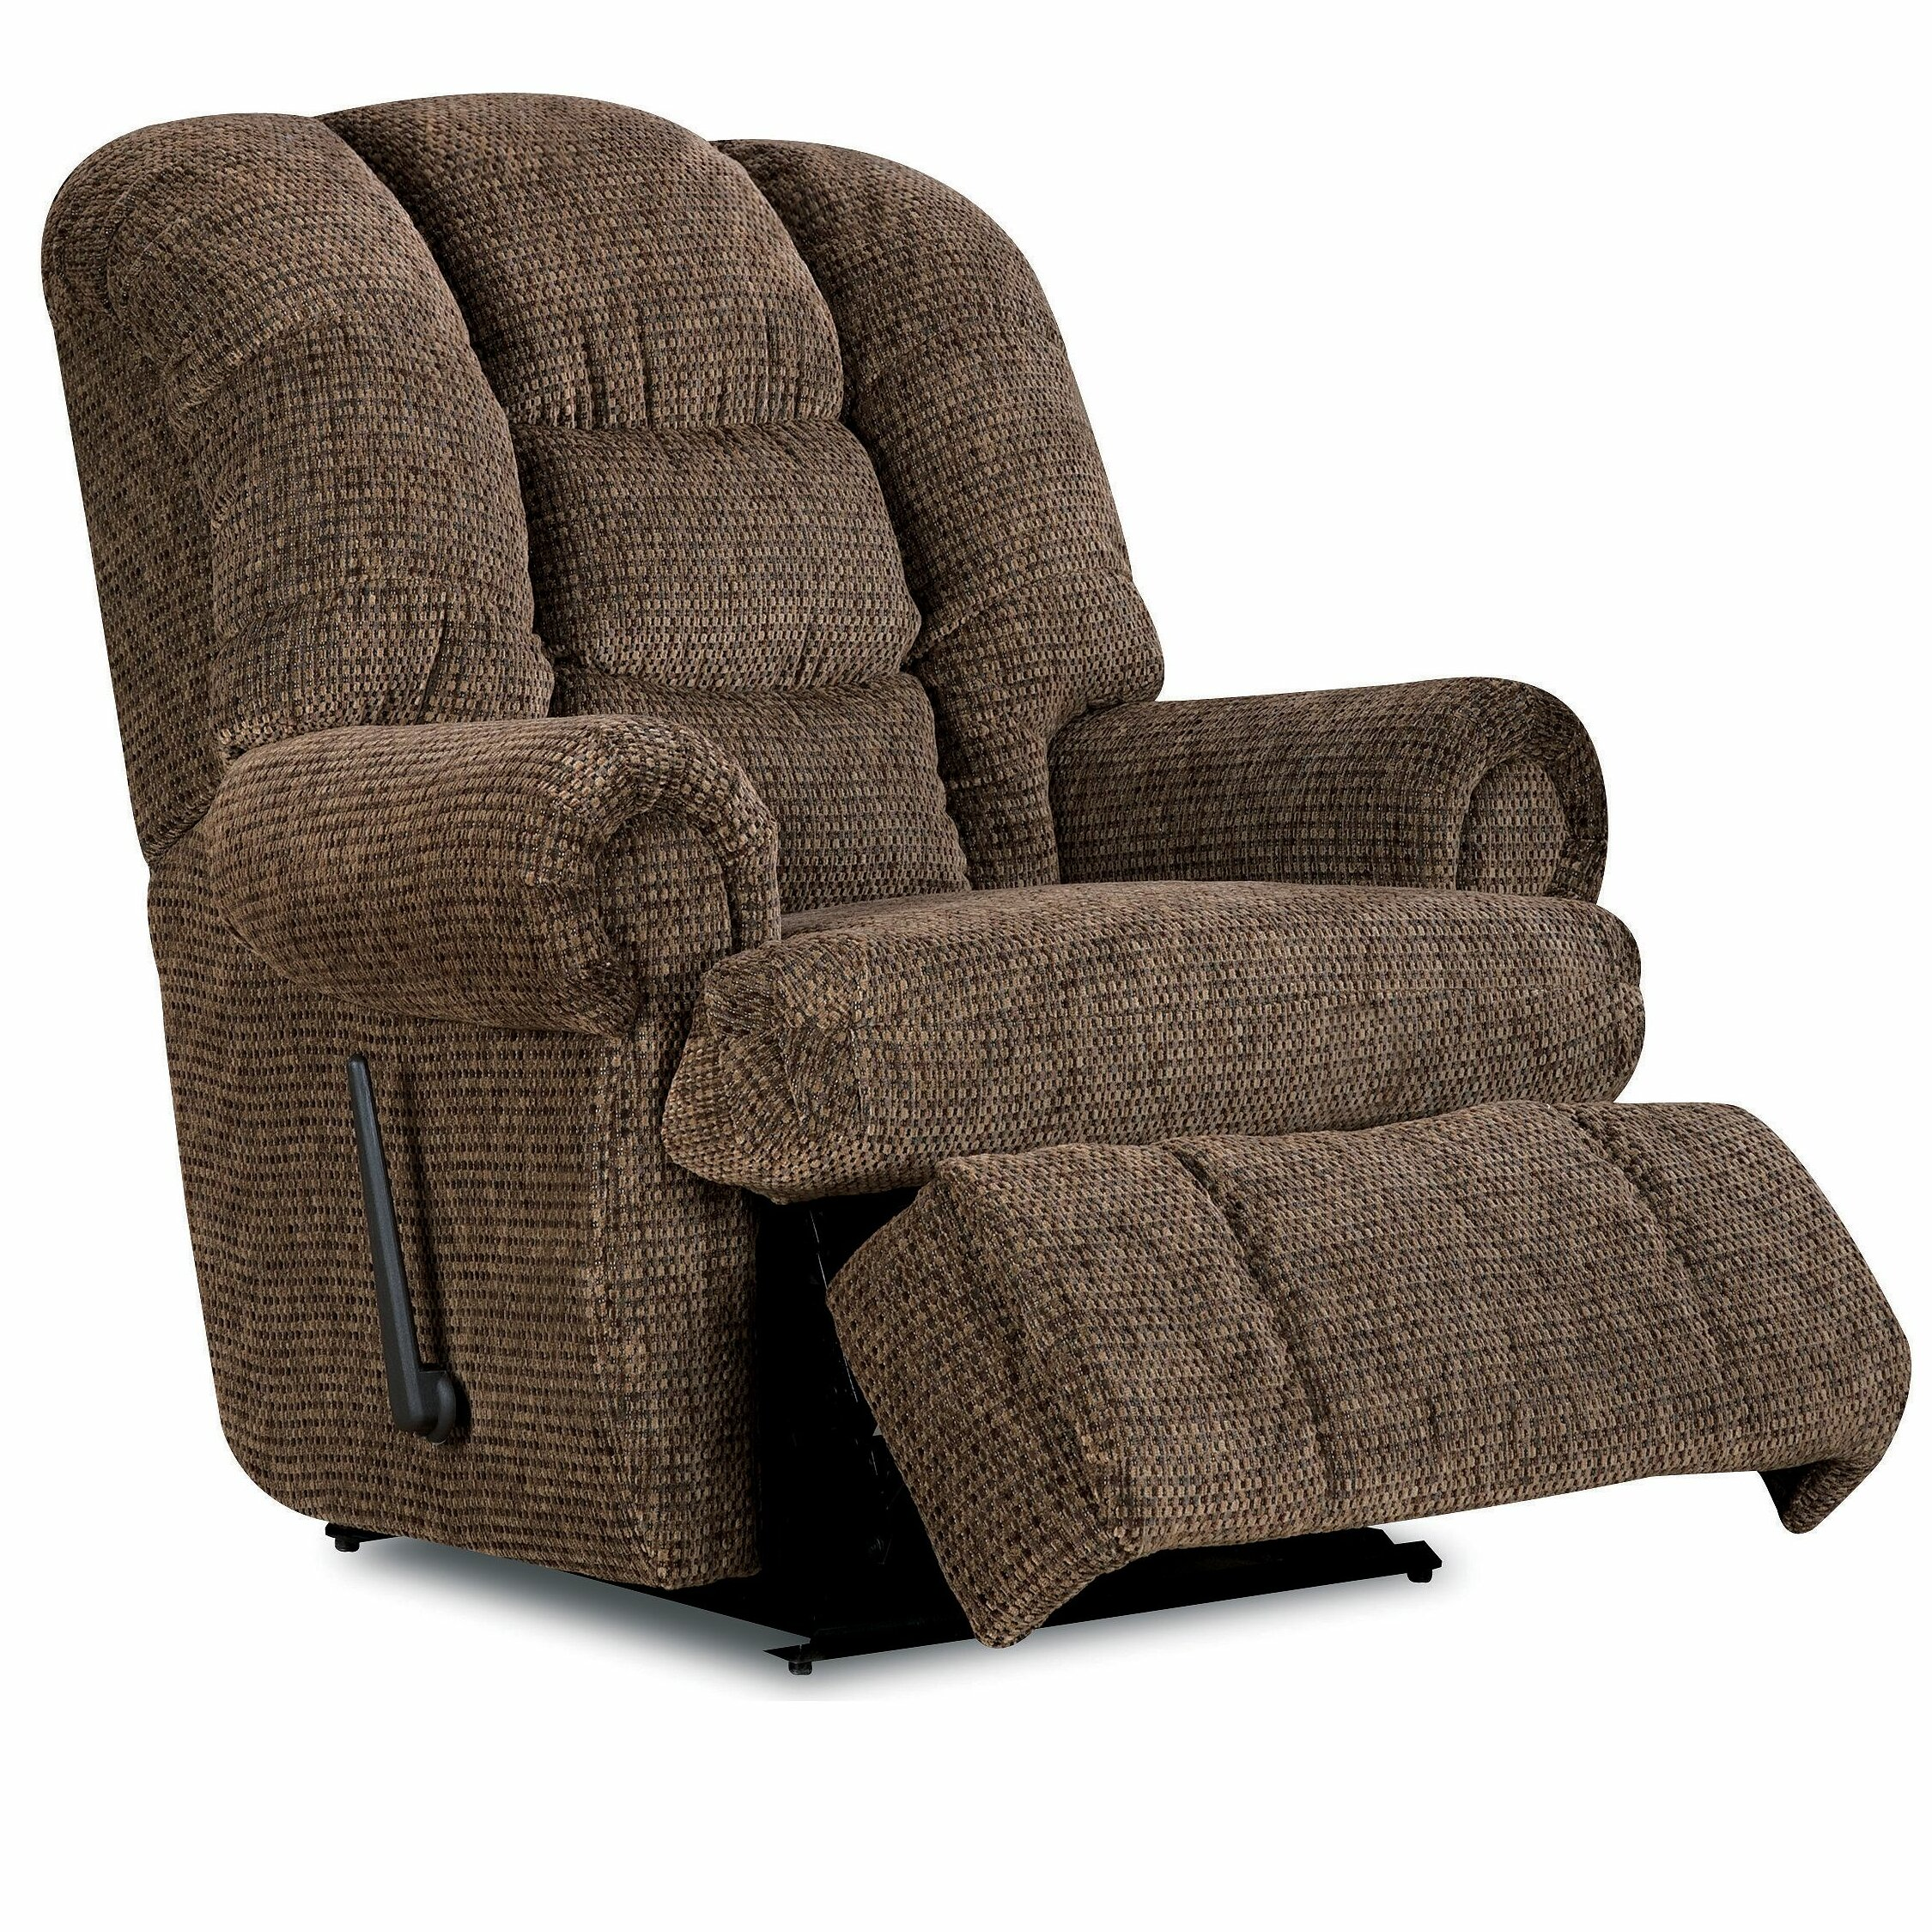 Lane furniture stallion recliner reviews for Lane furniture